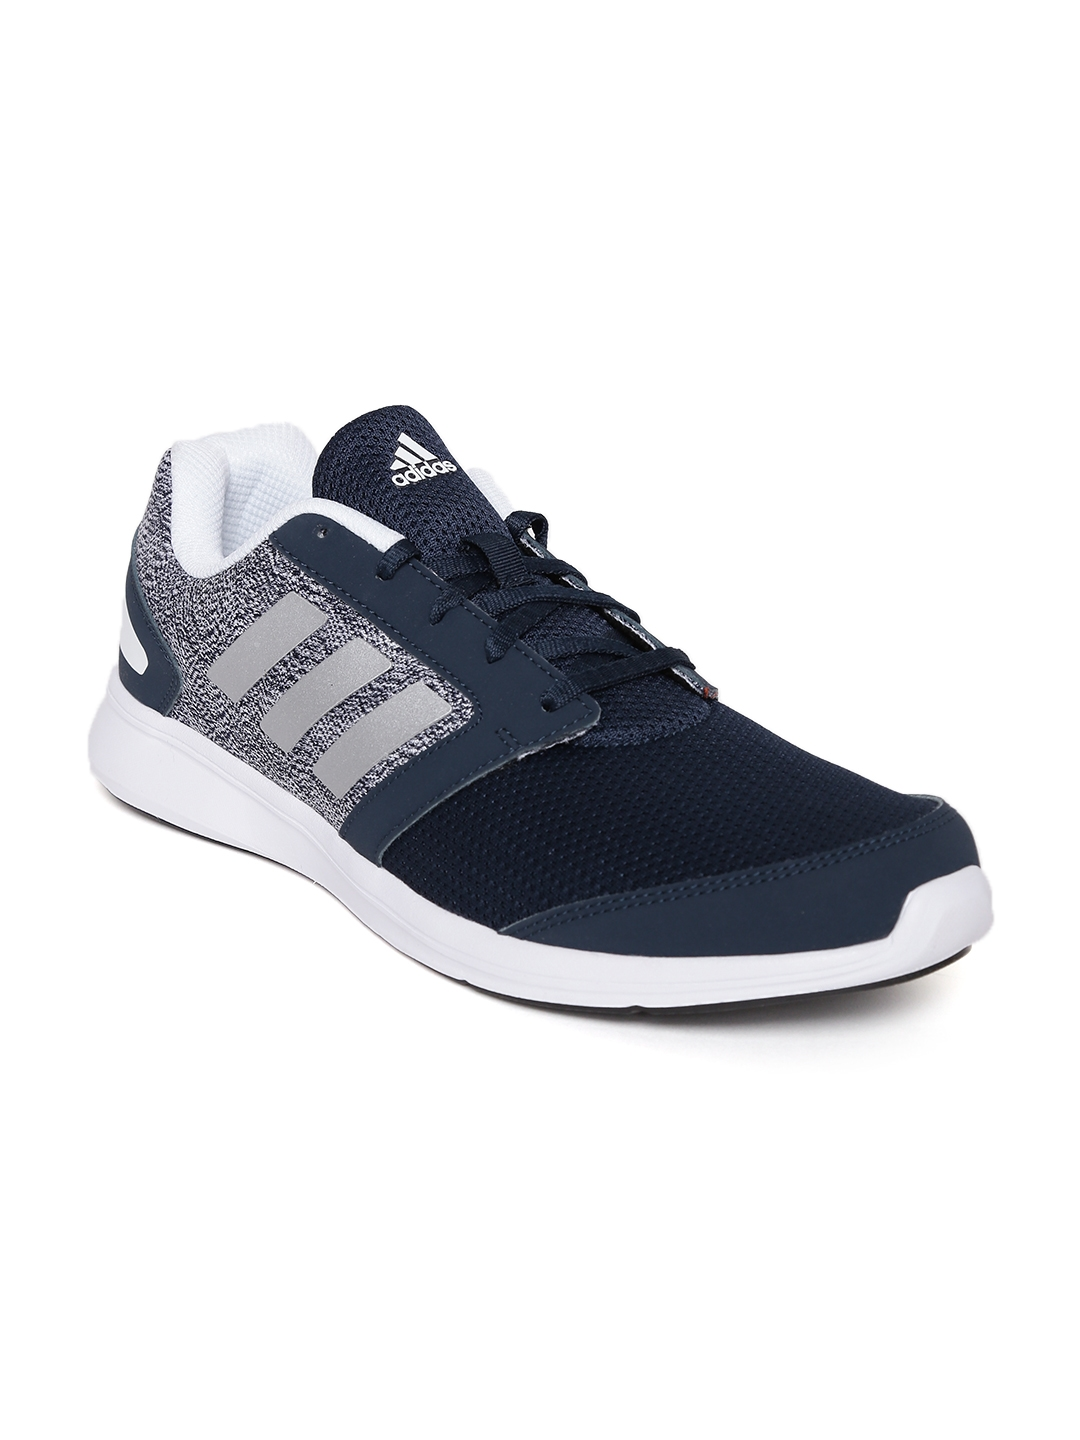 adidas New Arrivals with FREE Shipping & Exchanges, and a % price guarantee. Choose from a huge selection of adidas New Arrivals styles.